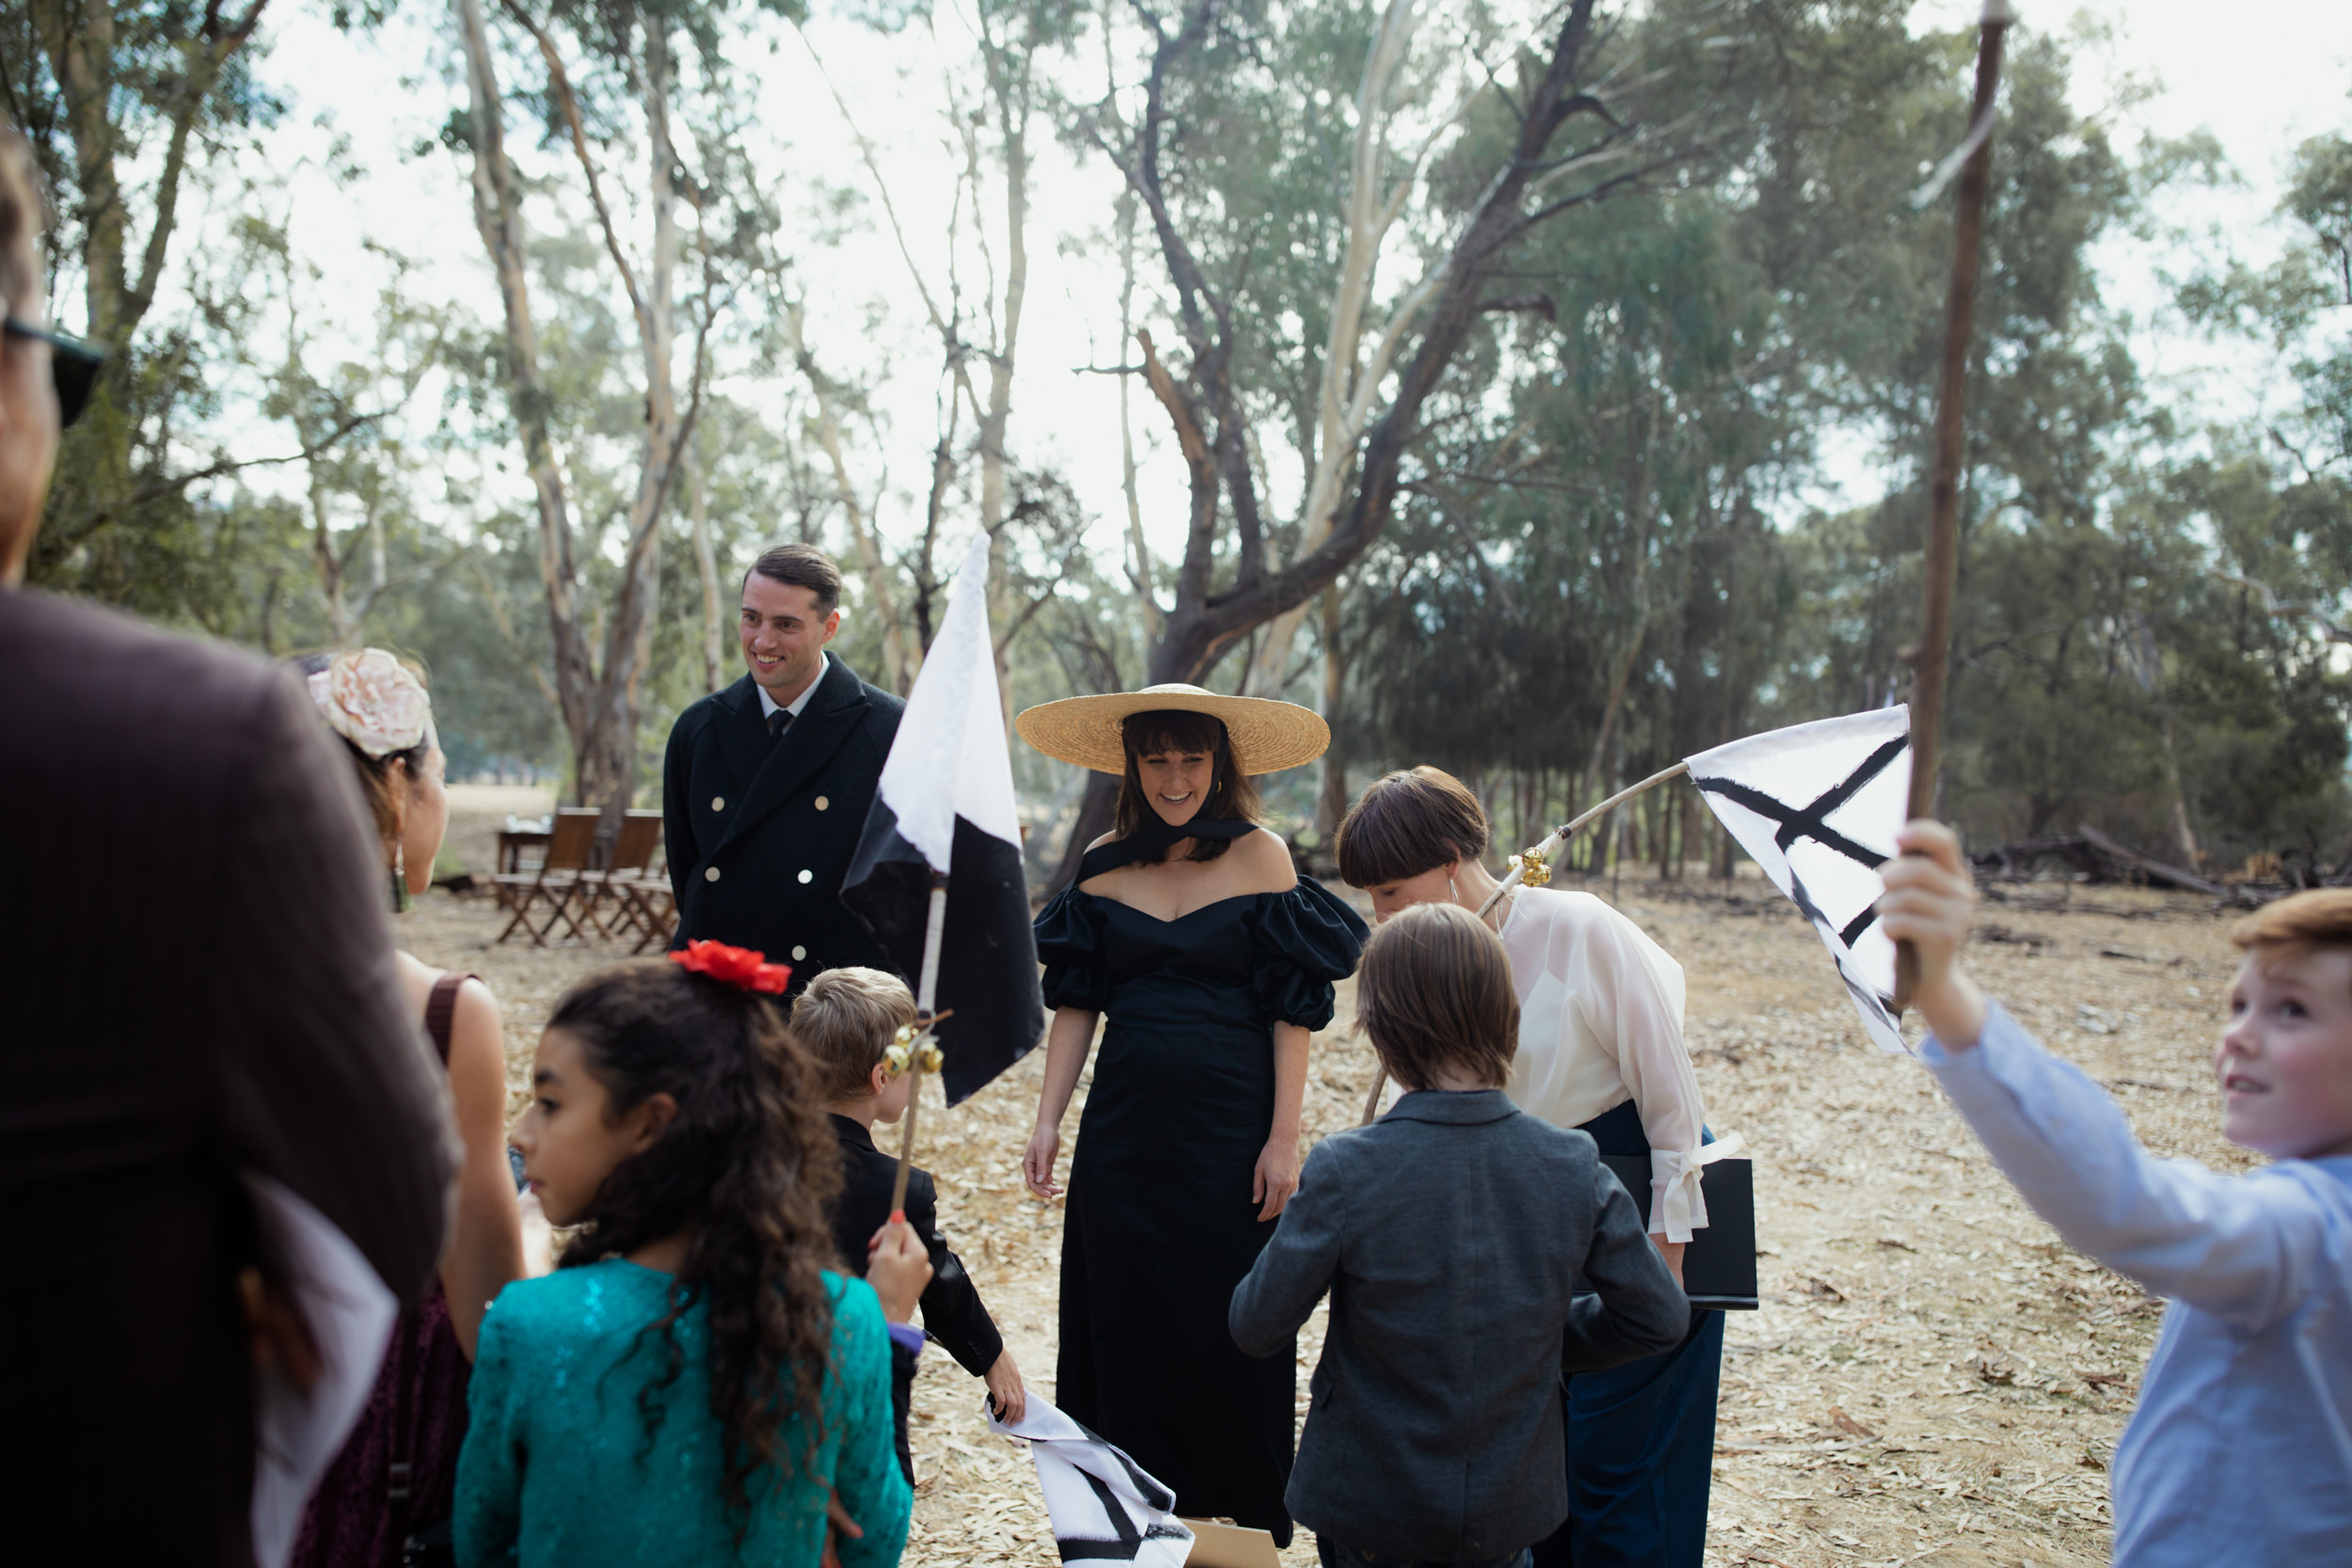 I-Got-You-Babe-Weddings-Claire-Dave-Trawol-VIC-Country-Property-Wedding066.JPG